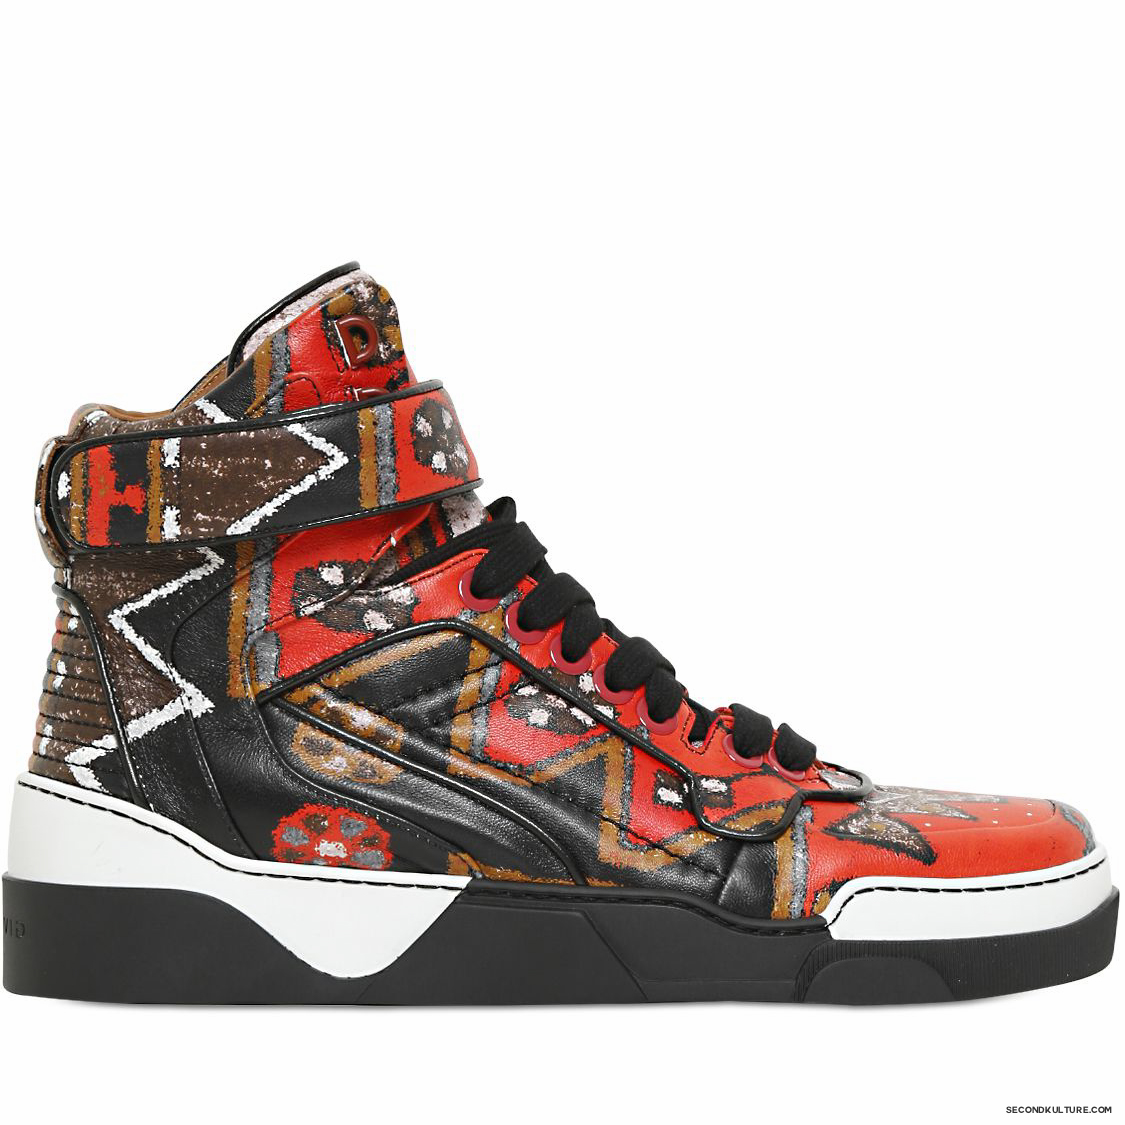 Givenchy-Native-American-Carpet-Print-Tyson-Leather-High-Top-Sneakers-Fall-Winter-2015-1